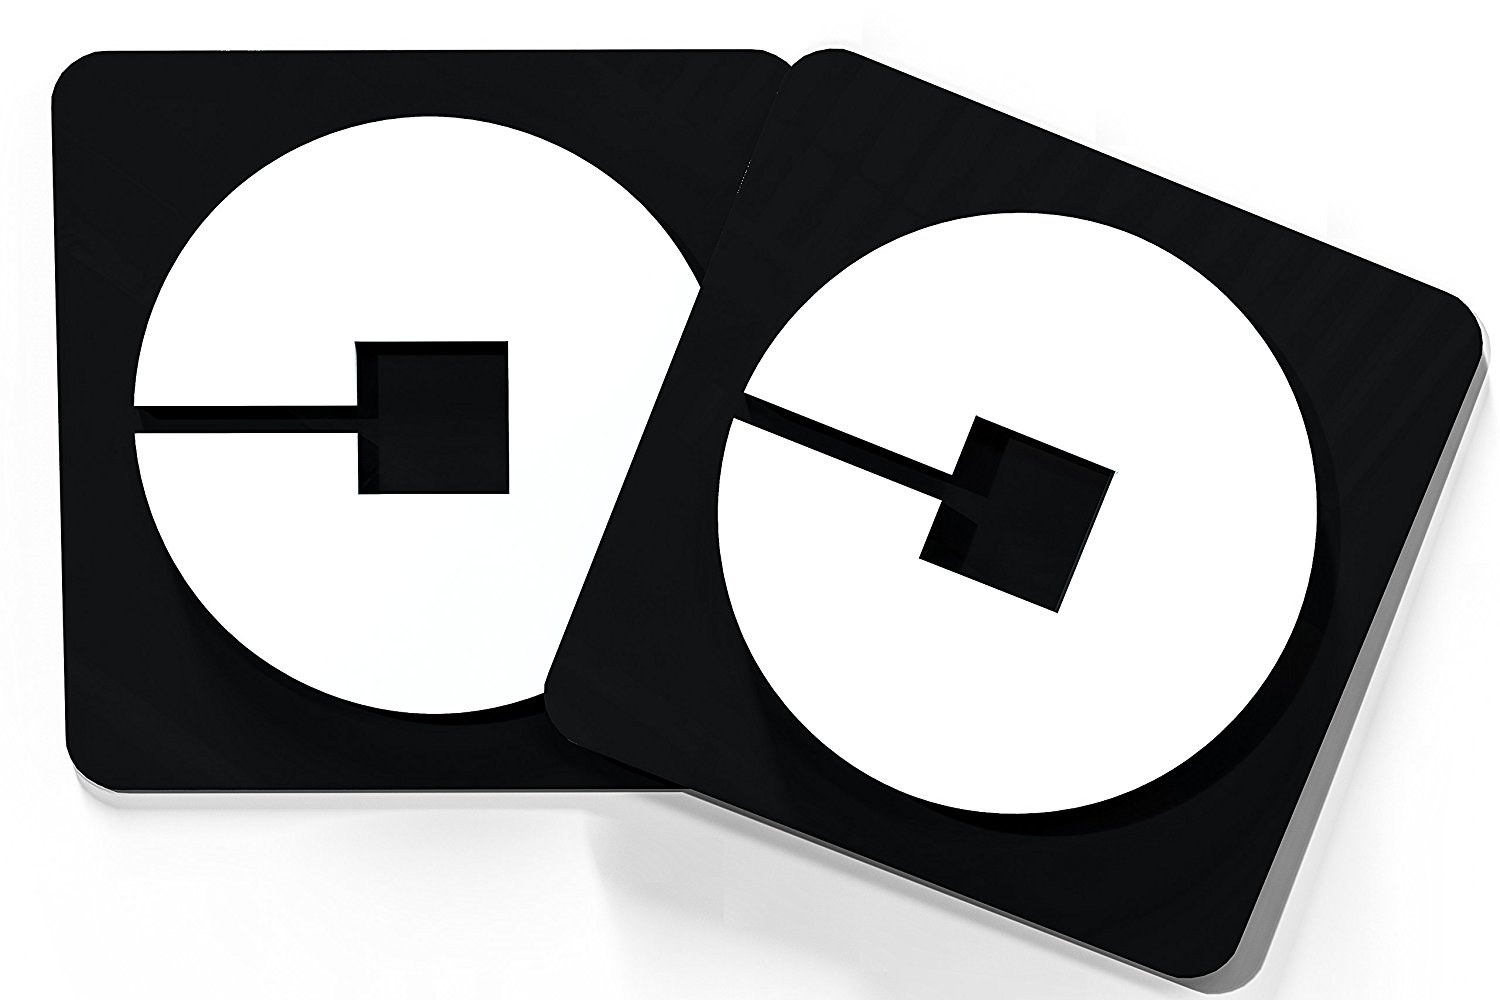 "2 - Pack. 5"" x 5"" - Black/White Uber Logo Car Magnet. Highly Durable; Weatherproof Car Magnet - Sign for Uber, Lyft, and Taxi Drivers - (Not A Sticker) Satisfaction Guranteed (Uber Black)"